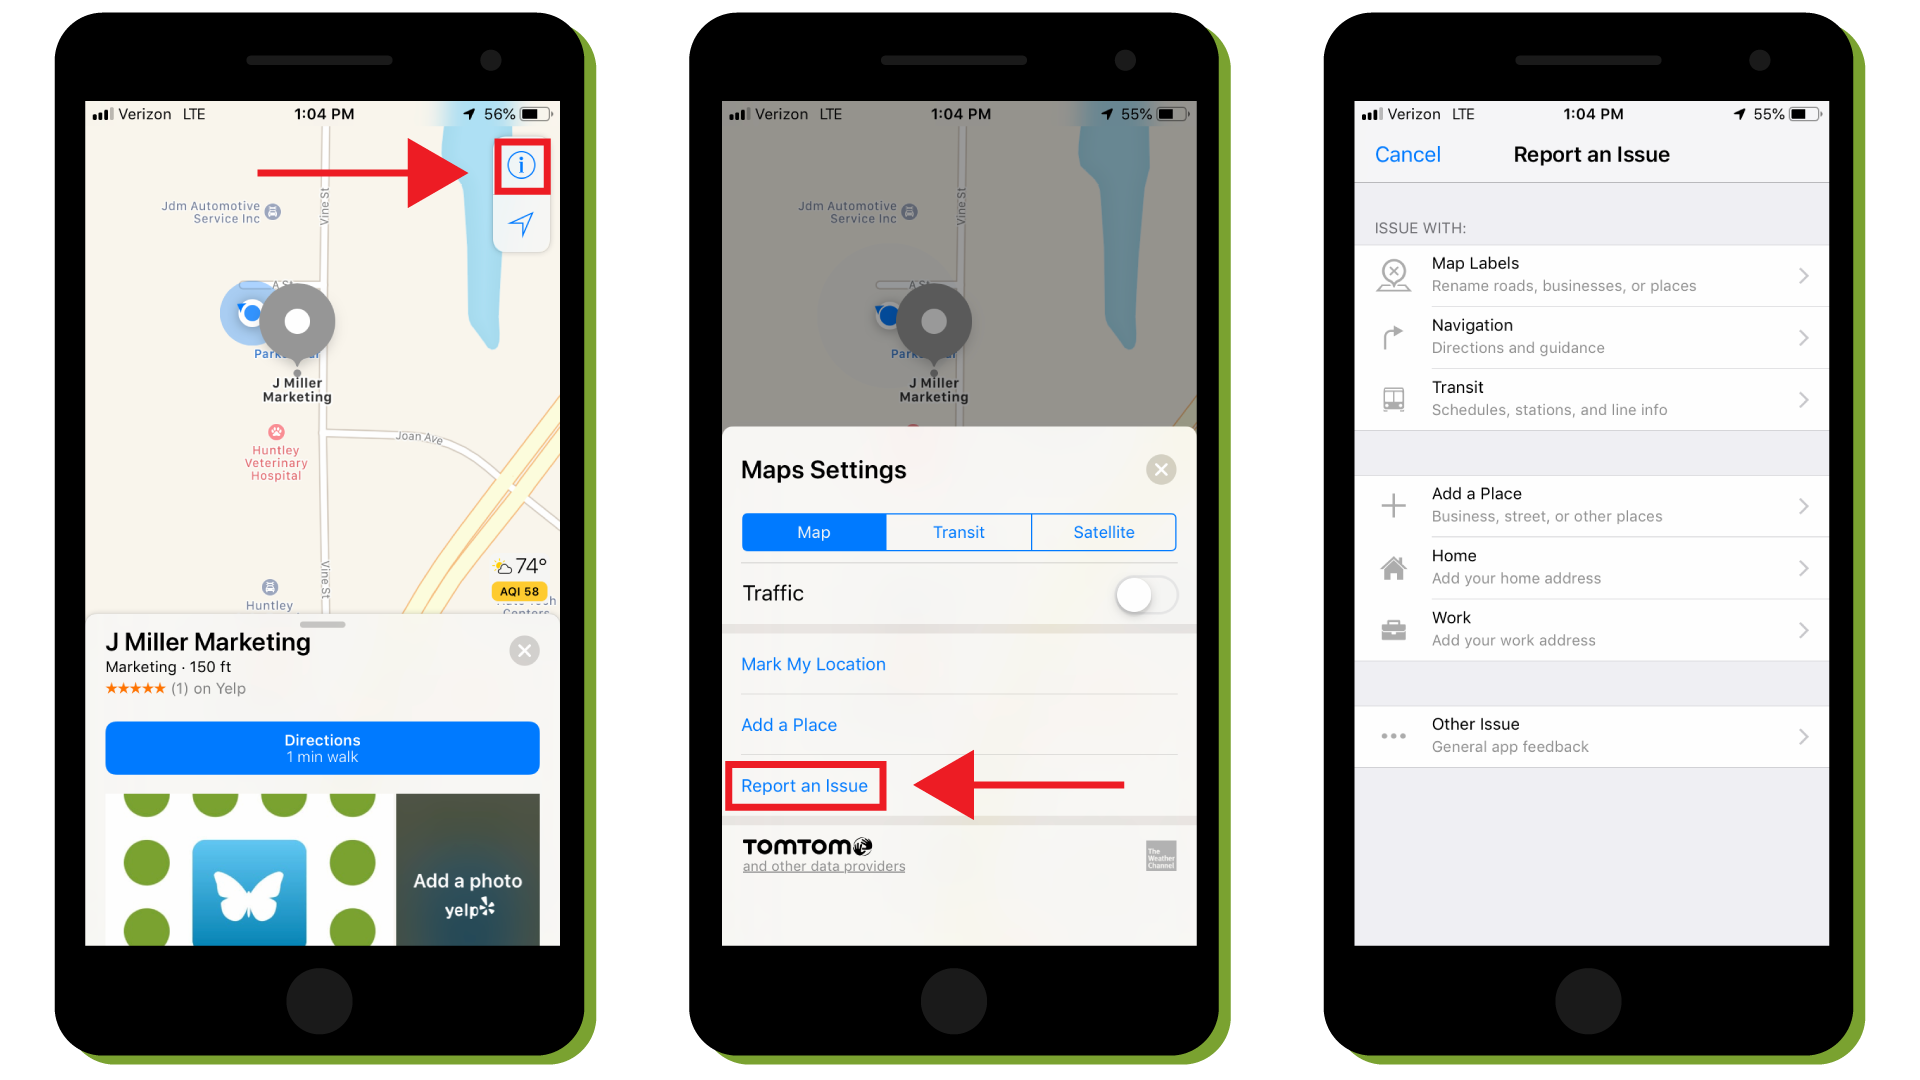 Open Apple Maps and follow these steps: - 1. Search for your listing.2. Tap the small 'i' icon highlighted above.3. Tap 'Report and Issue' and find the category that pertains to your issue.4. Explain the issue in detail to help Apple resolve it quickly.